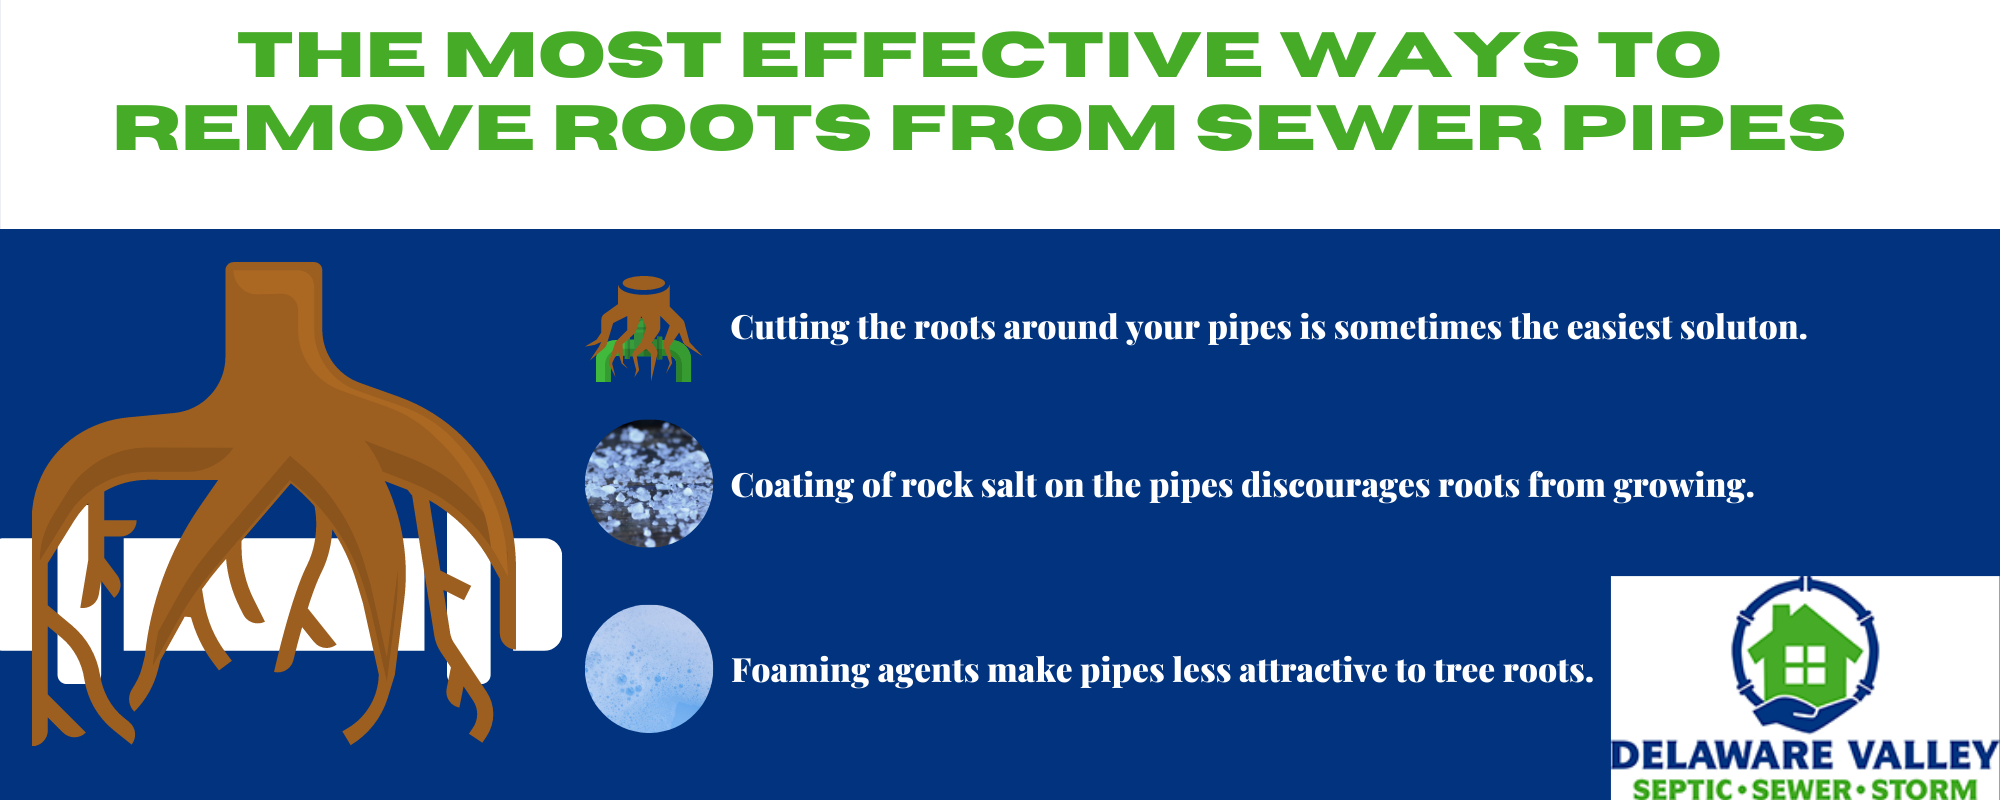 Infographic showing how to remove roots from sewer pipes.